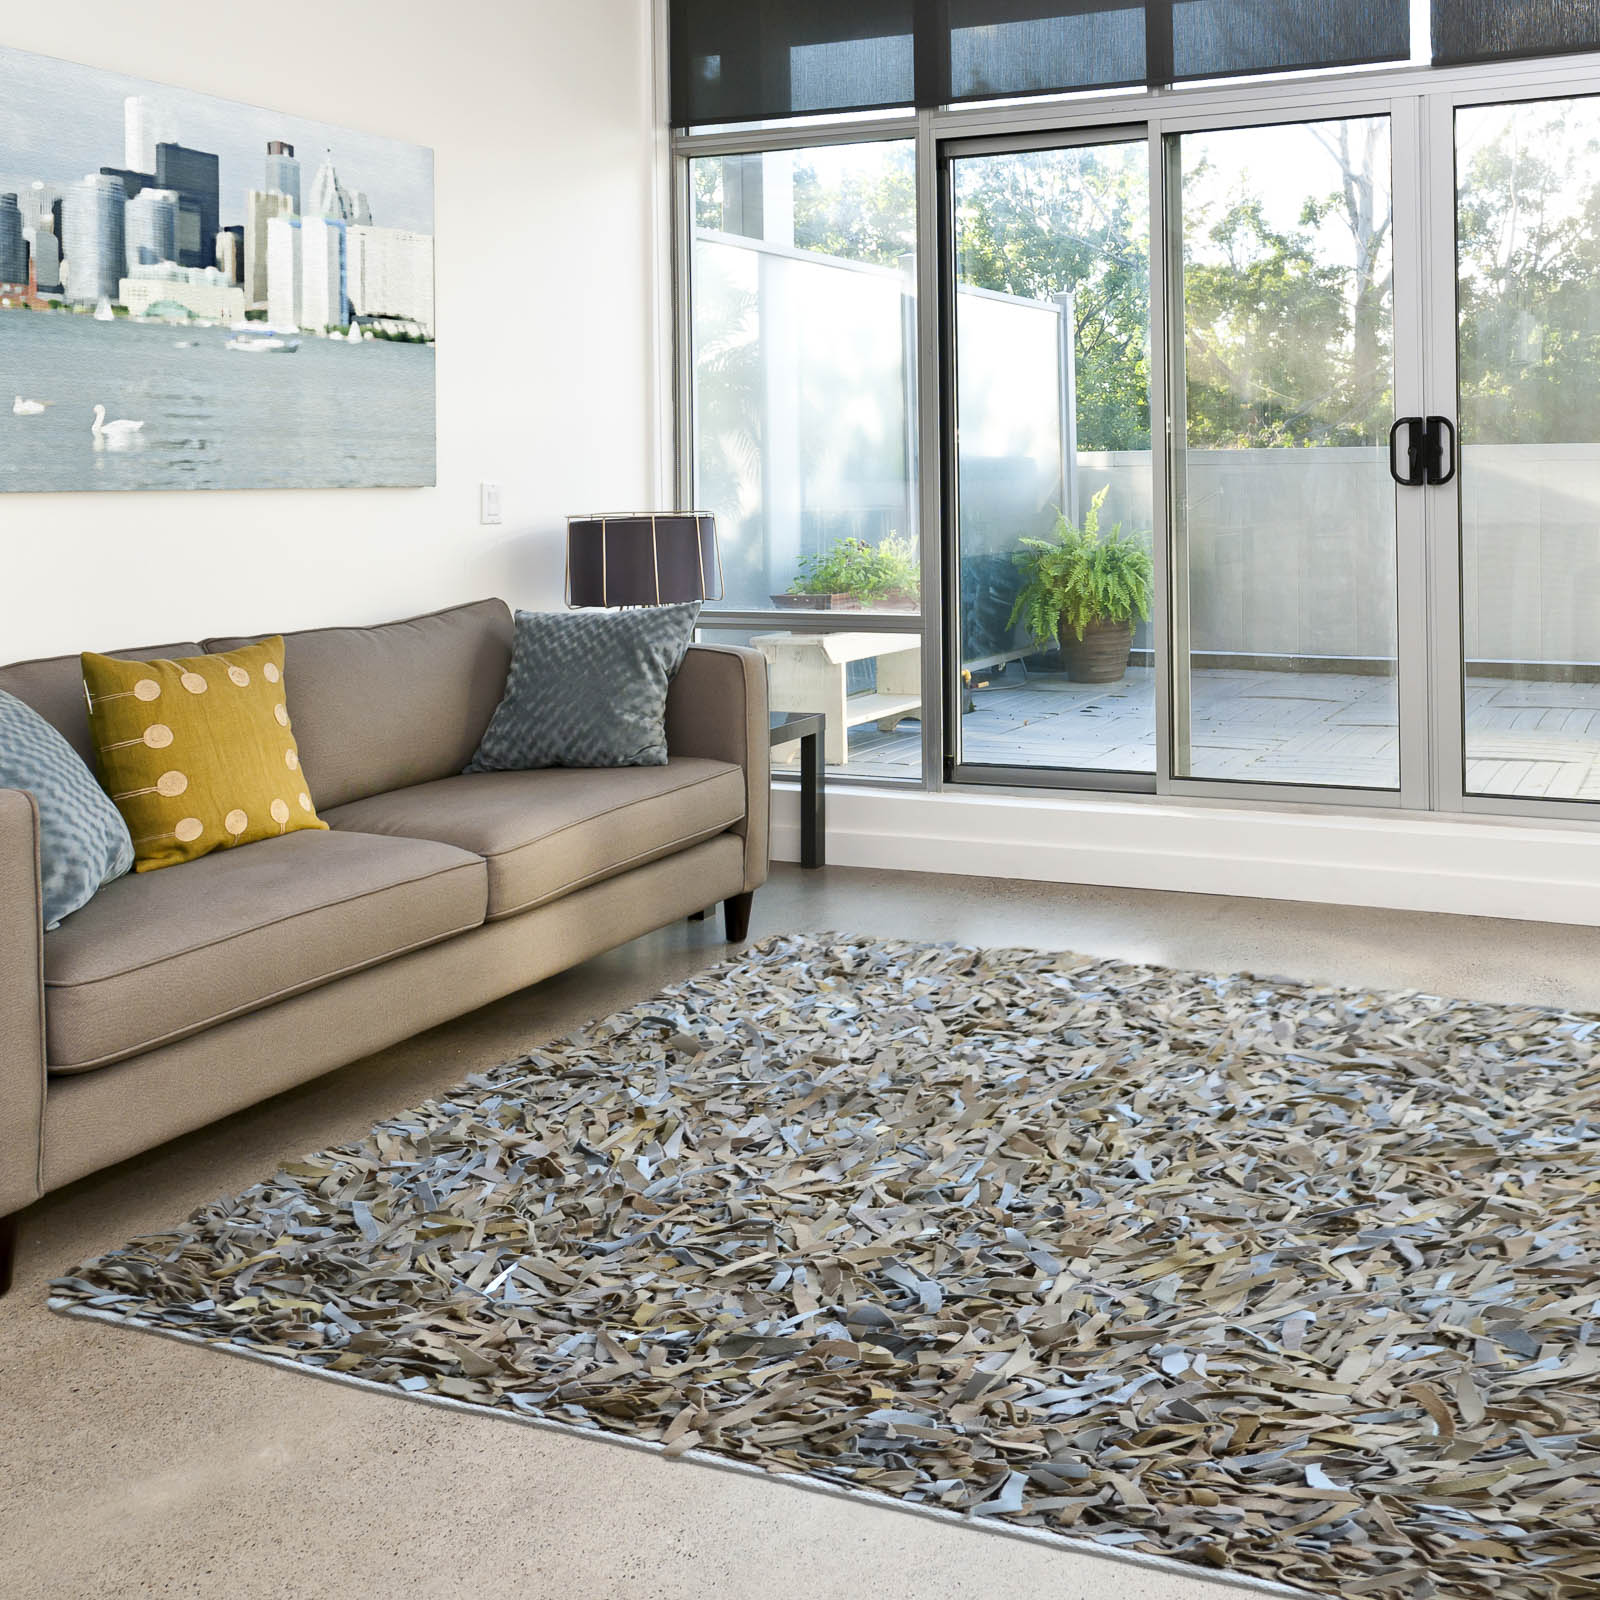 Leather Shaggy Rugs Buy Online At The Rug Seller